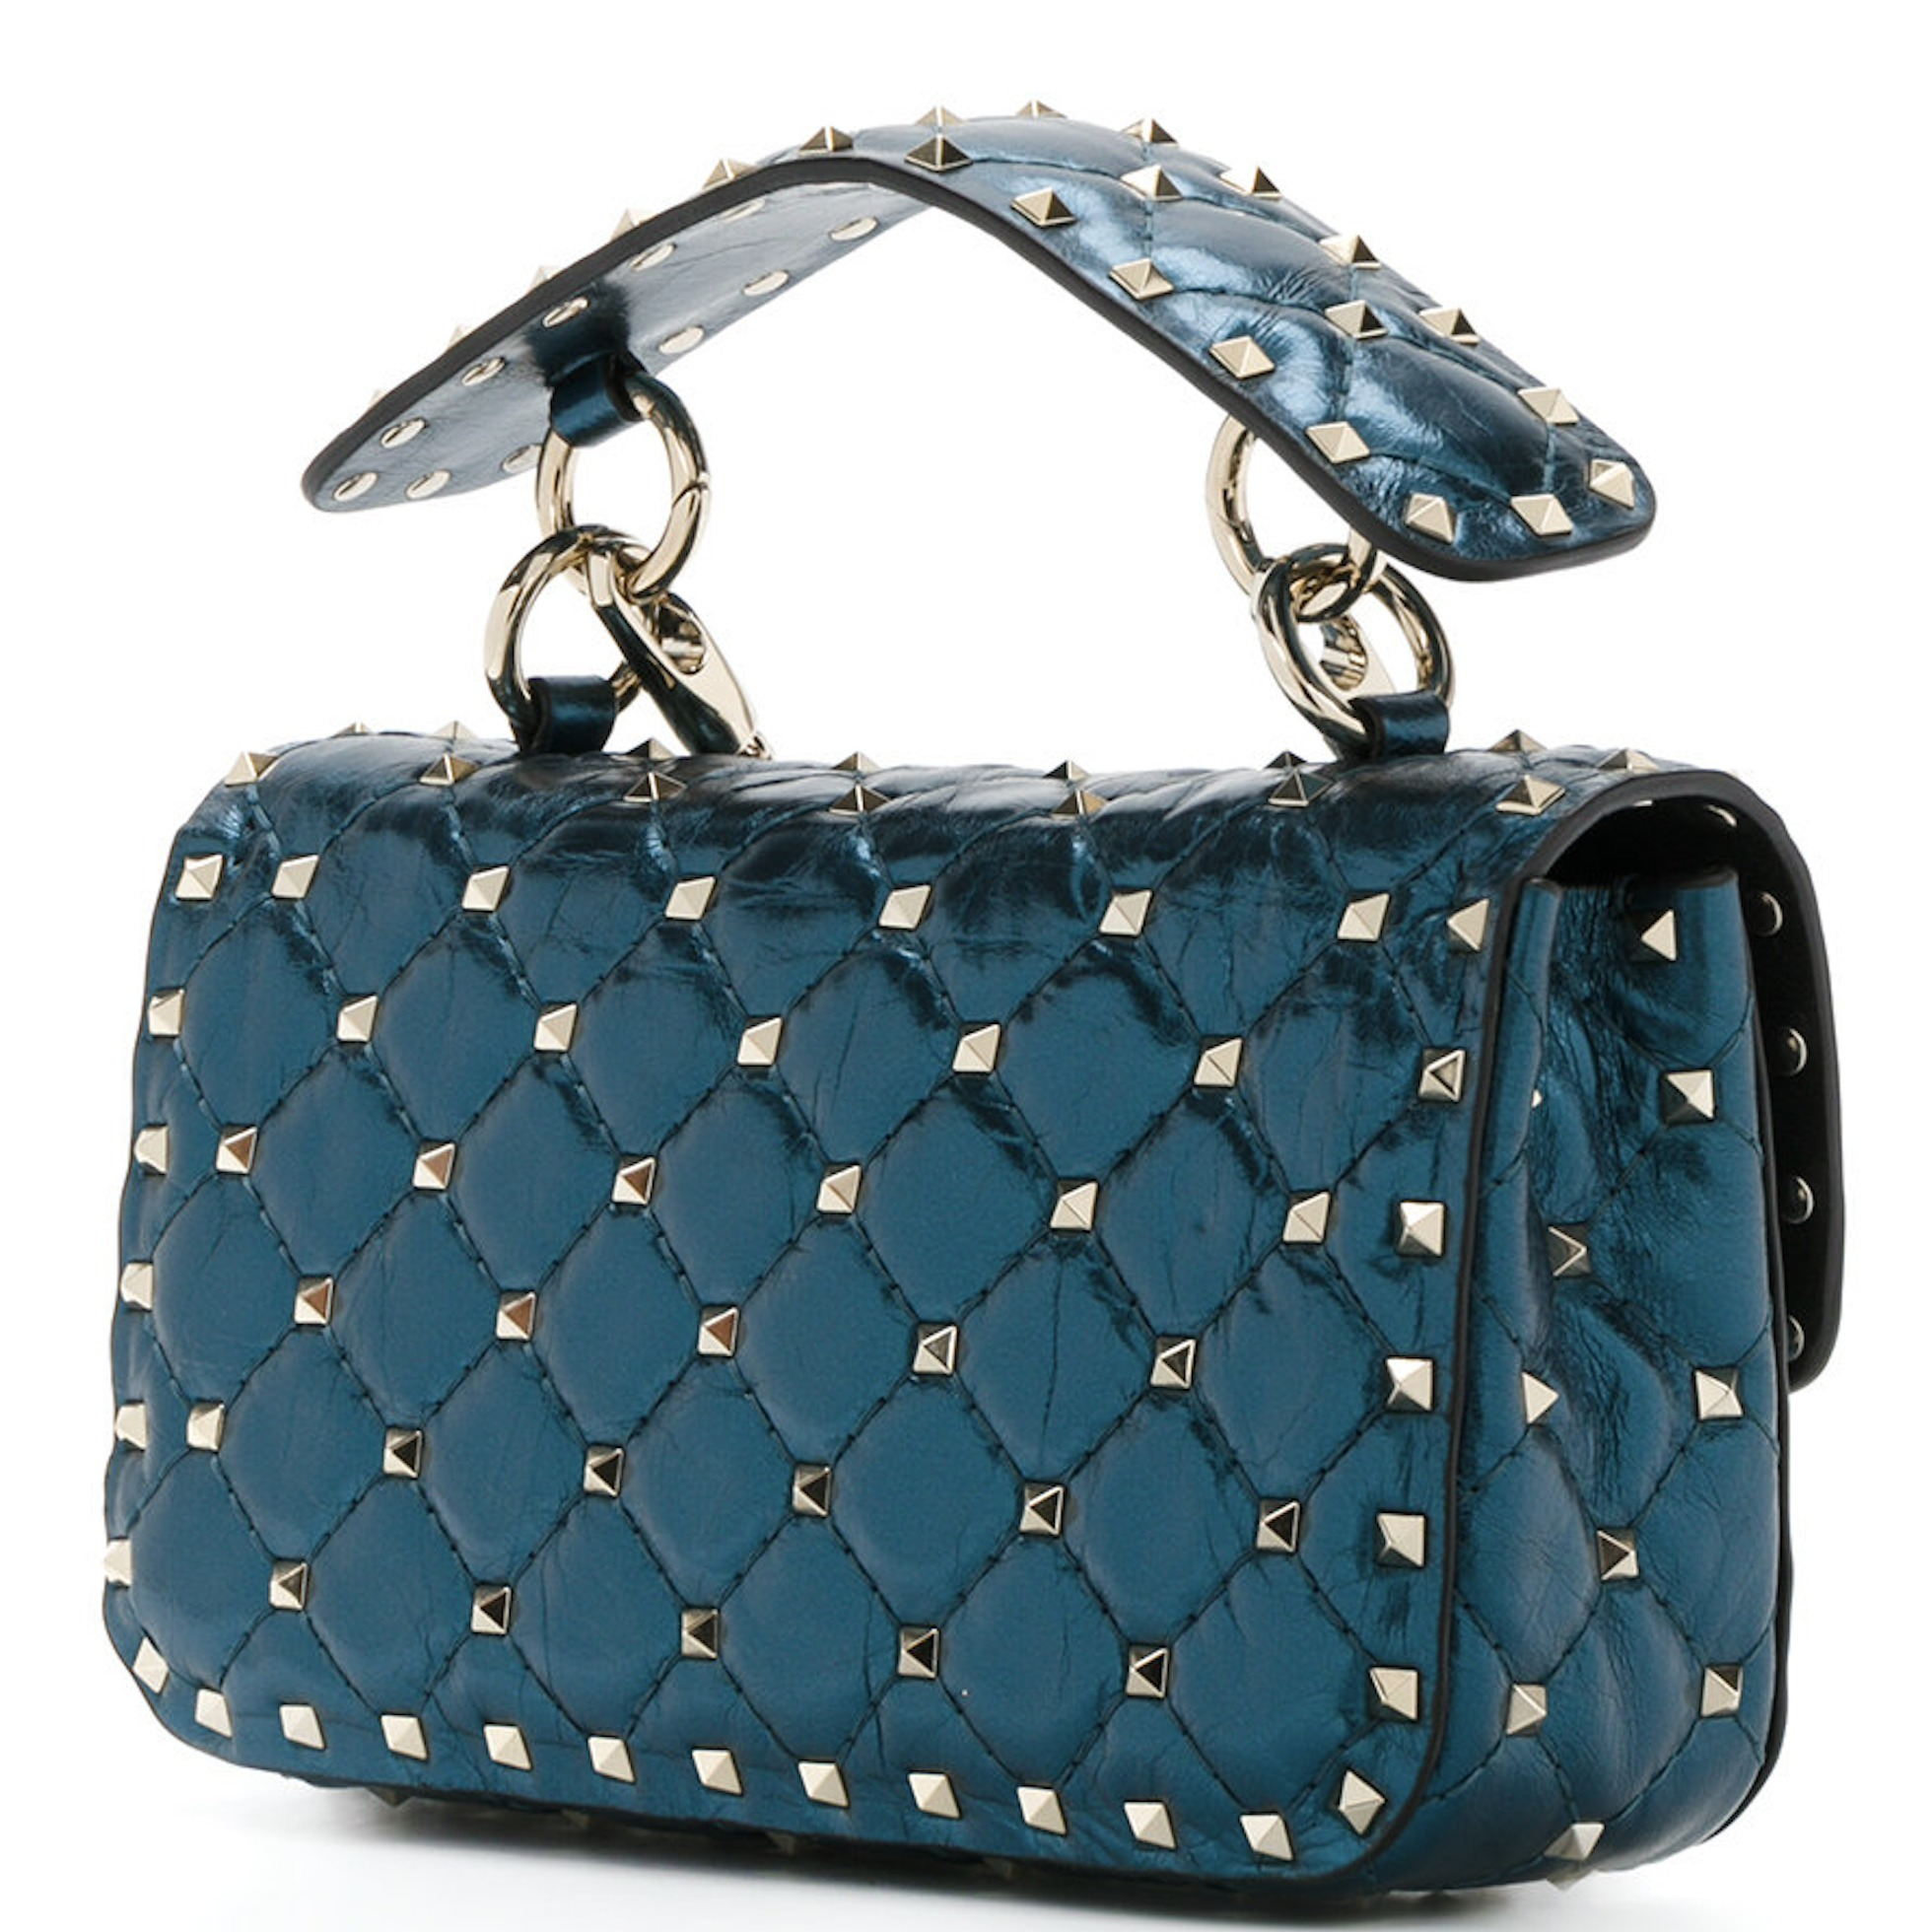 17-18AW V852 ROCKSTUD SPIKE SMALL CHAIN BAG